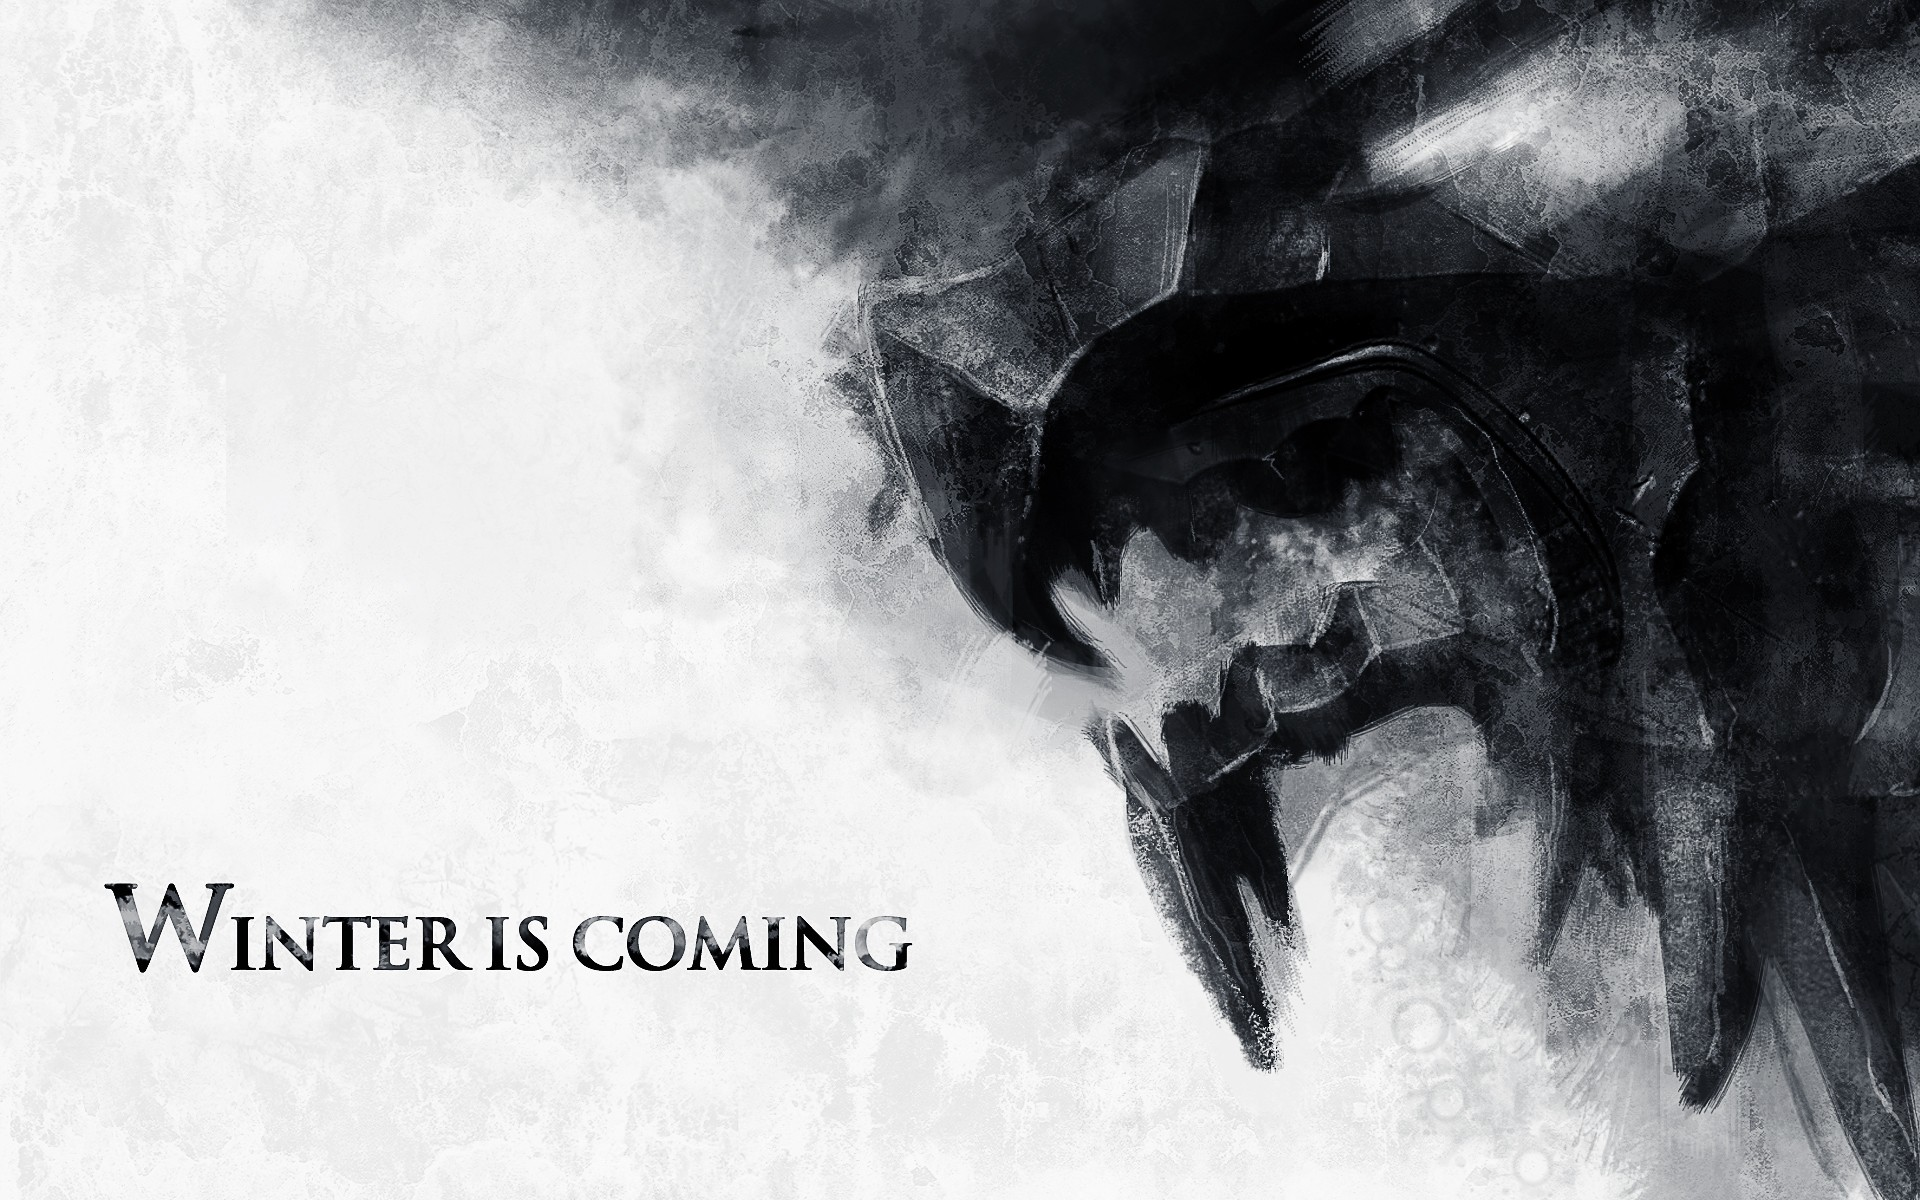 Free Download Winter Is Coming Wallpapers Winter Is Coming Stock